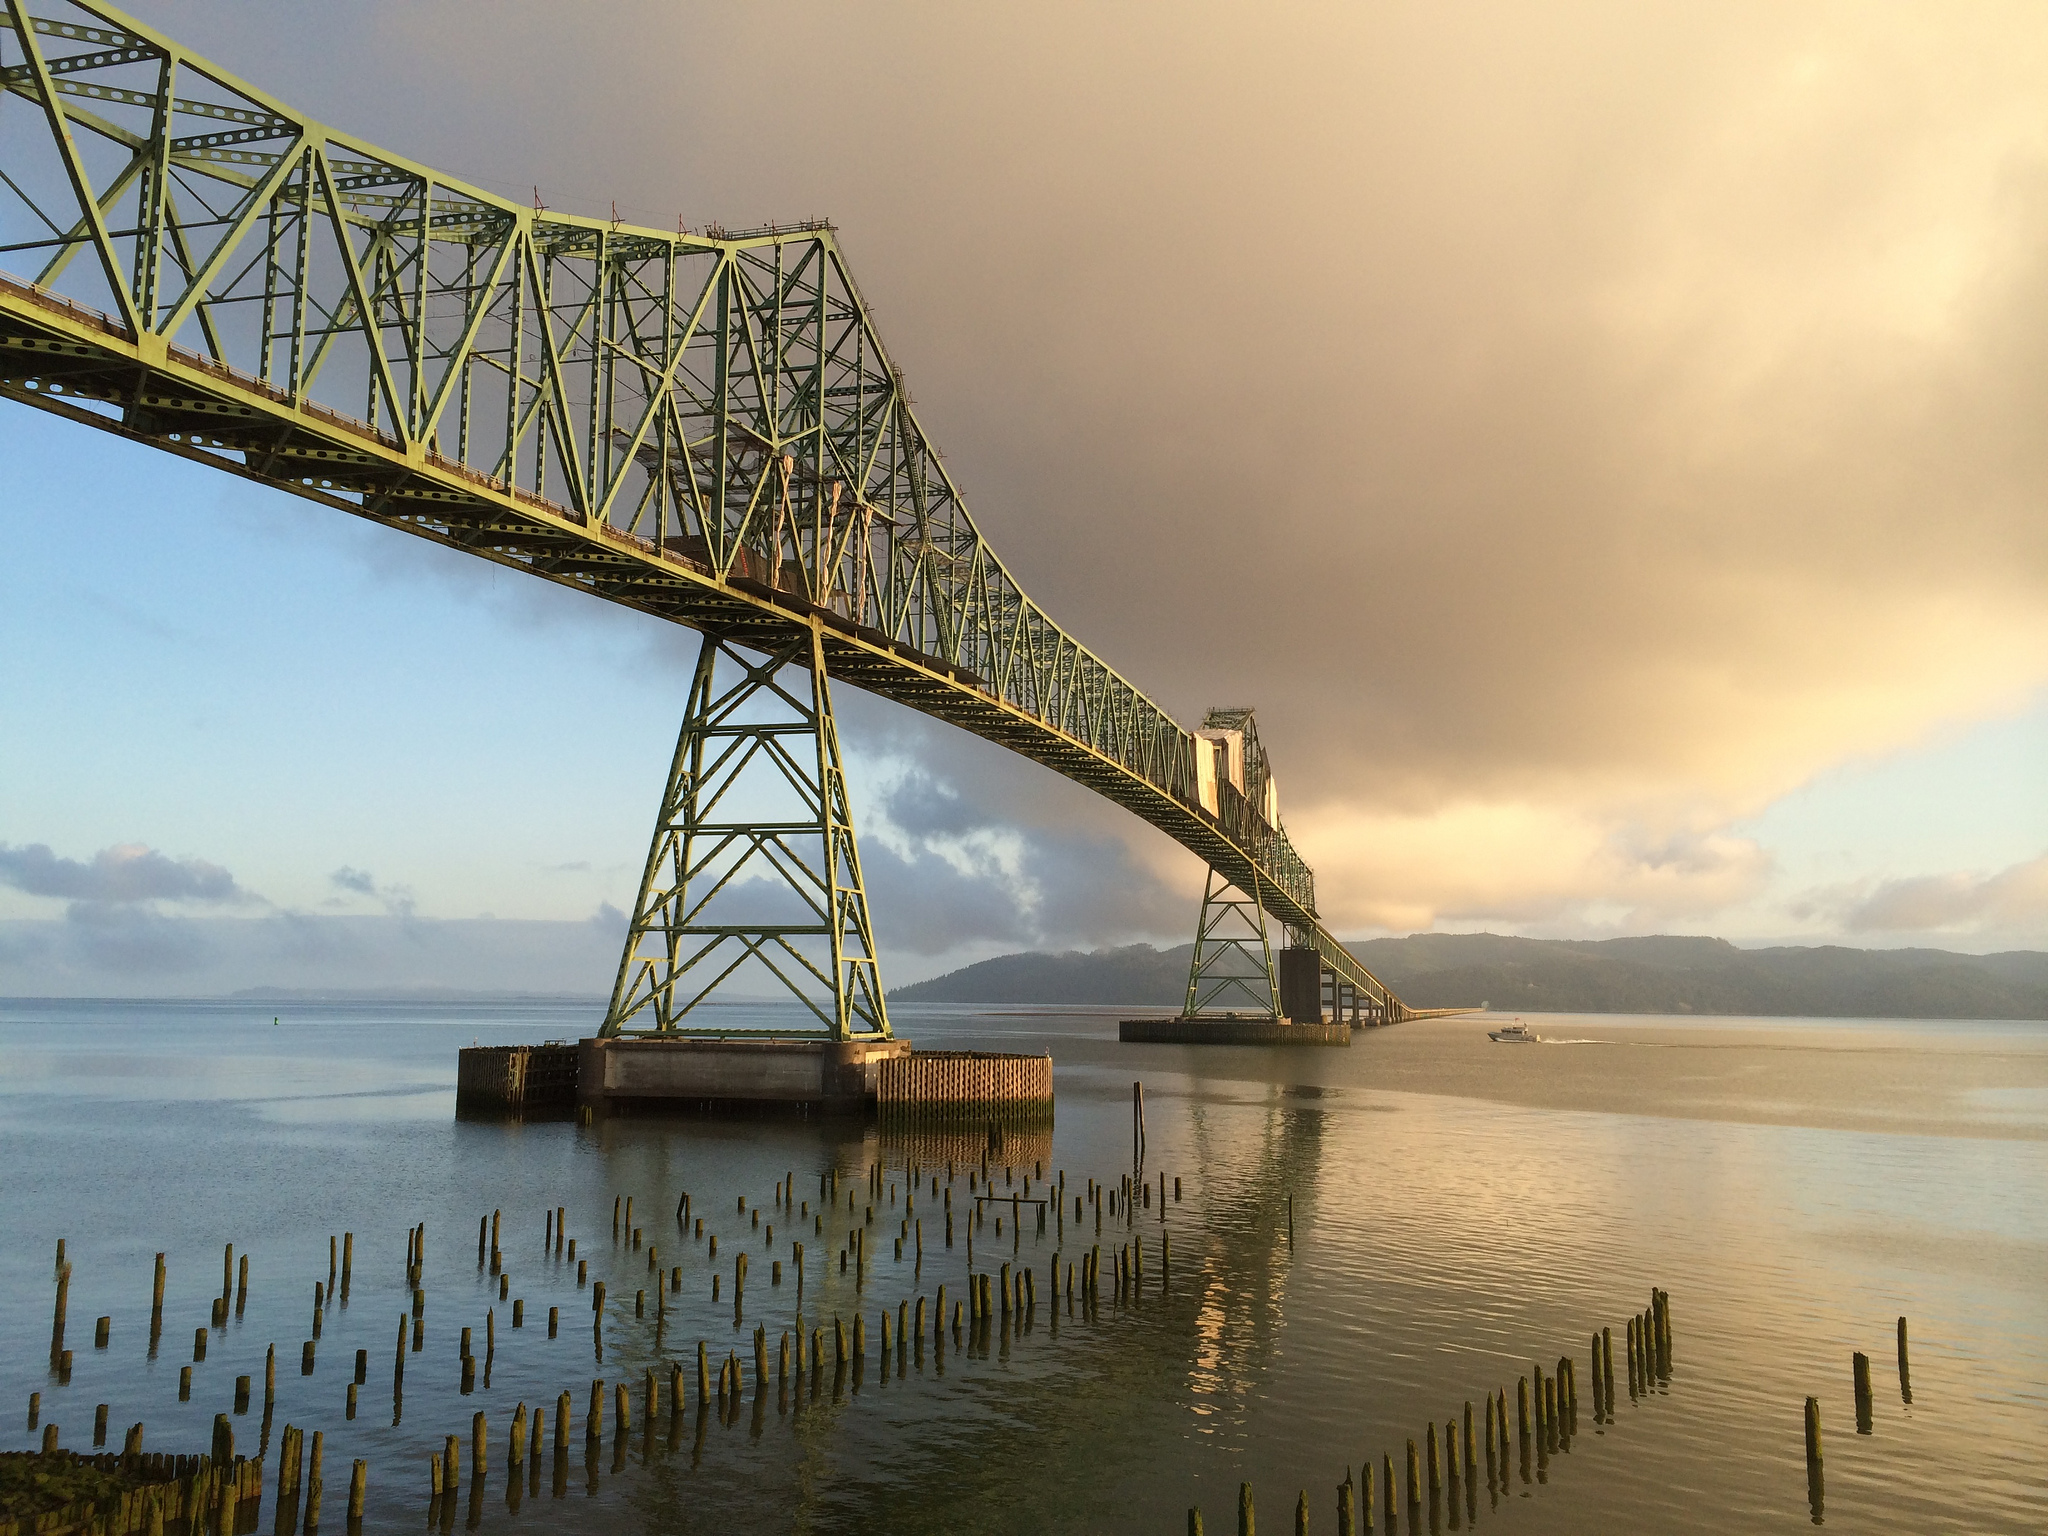 The gorgeous Astoria-Megler Bridge was captured in The Goonies, Kindergarten Cop, Short Circuit, and The Ring 2